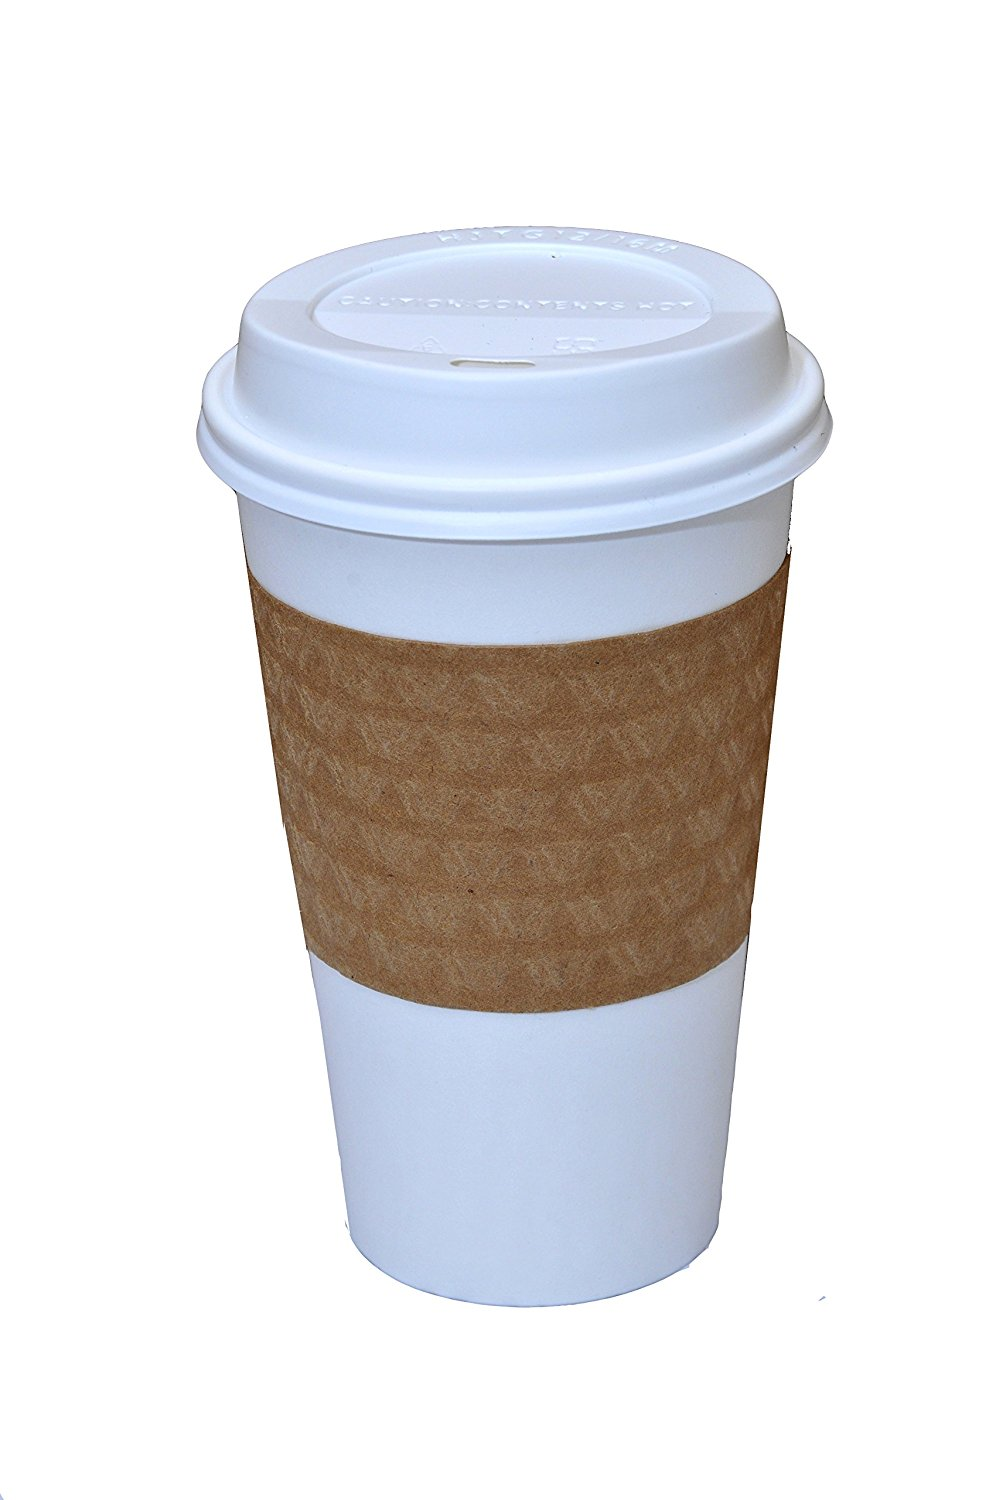 Solo White Paper Hot Cups with Lids, 16 oz, 100 Count by